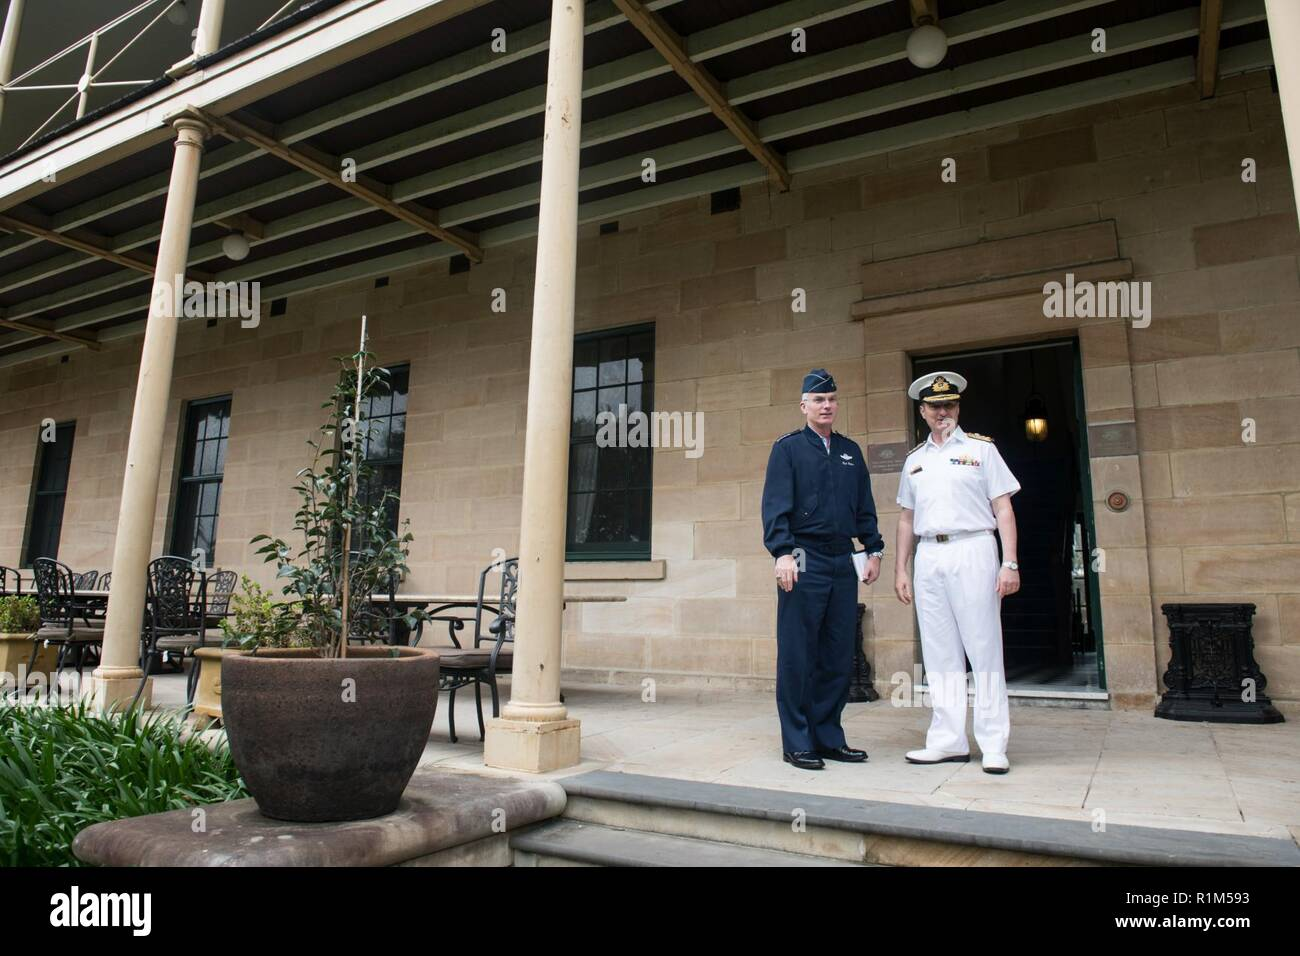 U.S. Air Force Gen. Paul J. Selva, Vice Chairman of the Joint Chiefs of Staff, meets with Australian Navy Vice Adm. David Johnston, Vice Chief of the Defence Force, at Victoria Barracks in Sydney, New South Wales, Australia; Oct. 19, 2019. Gen. Selva was in Australia to attend the Invictus Games Sydney 2018, an international adaptive sporting event with current and former U.S. wounded, ill, or injured service members. - Stock Image